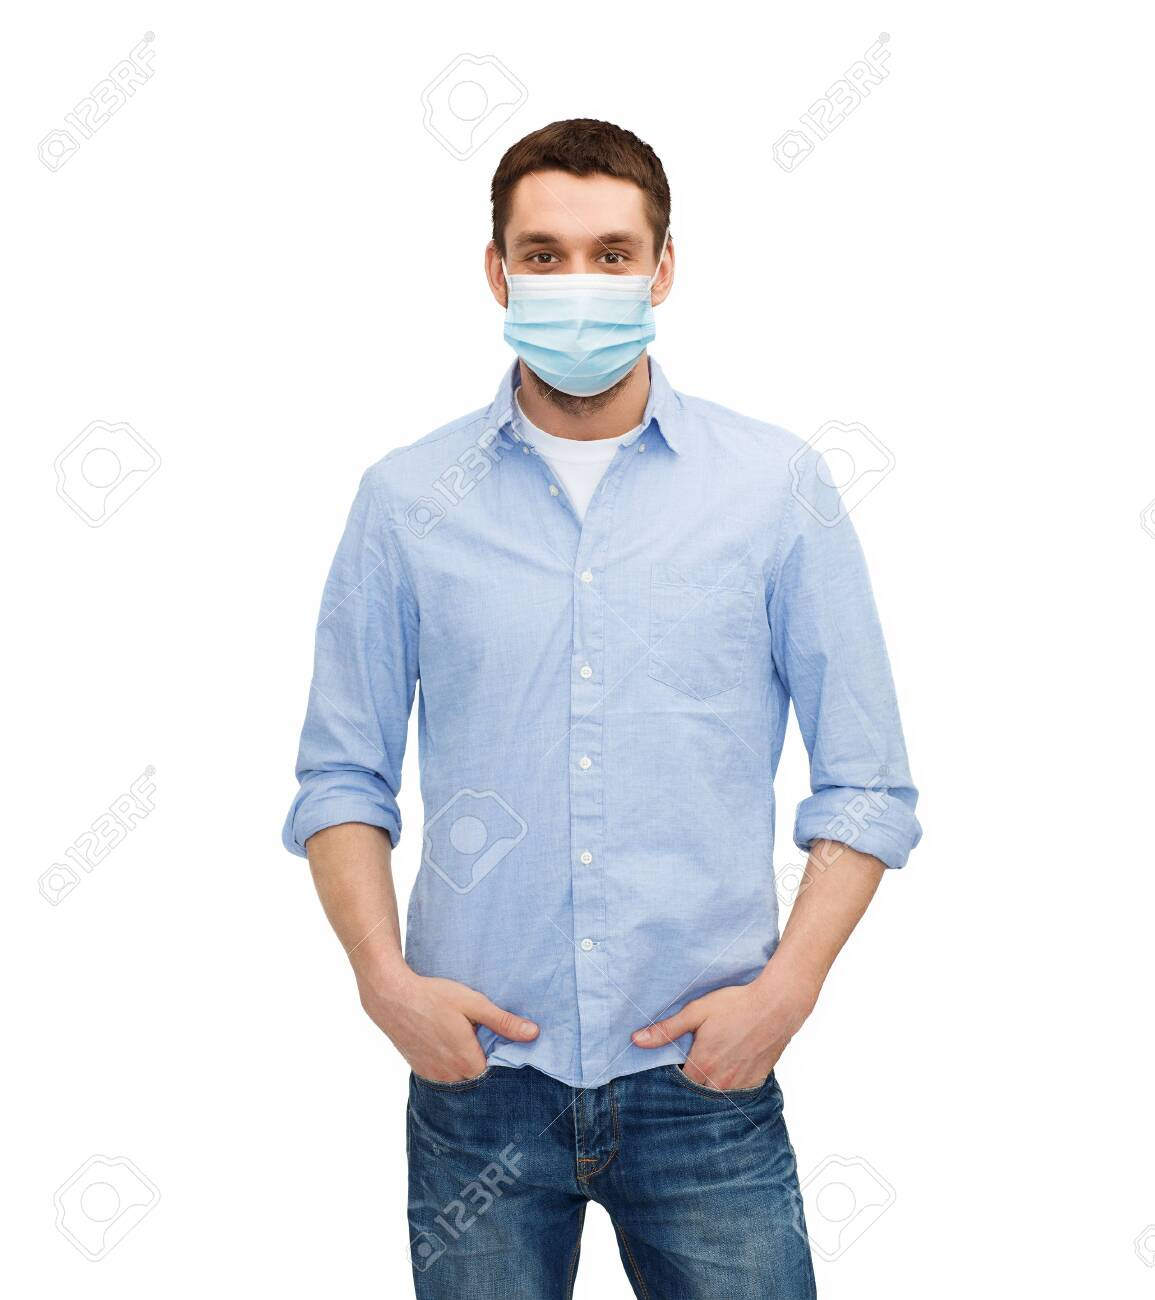 young man in protective medical mask - 143942399